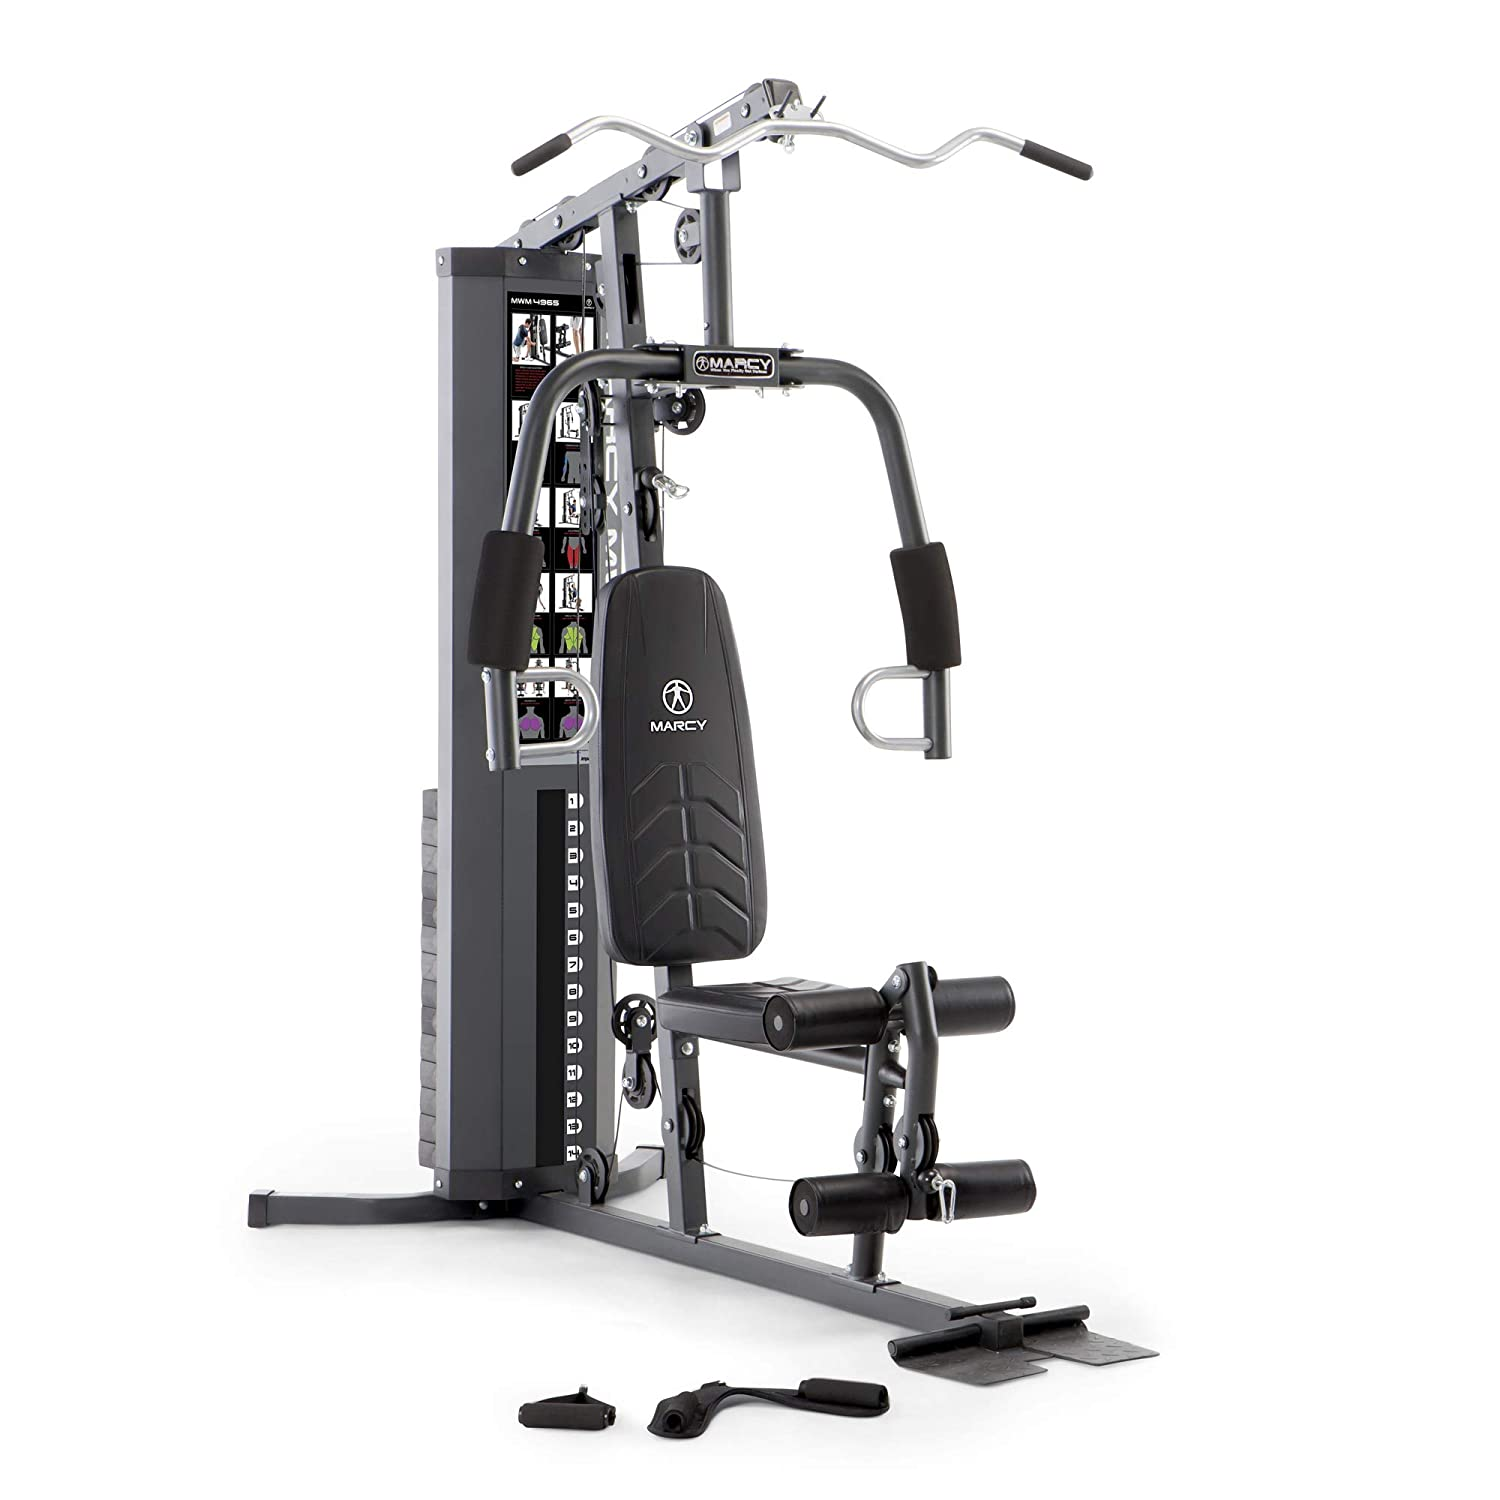 Marcy 150lb. Stack Home Gym with Pulley, Arm, and Leg Developer Multifunctional Workout Station for Weightlifting and Bodybuilding – 300 lbs Capacity MWM-4965